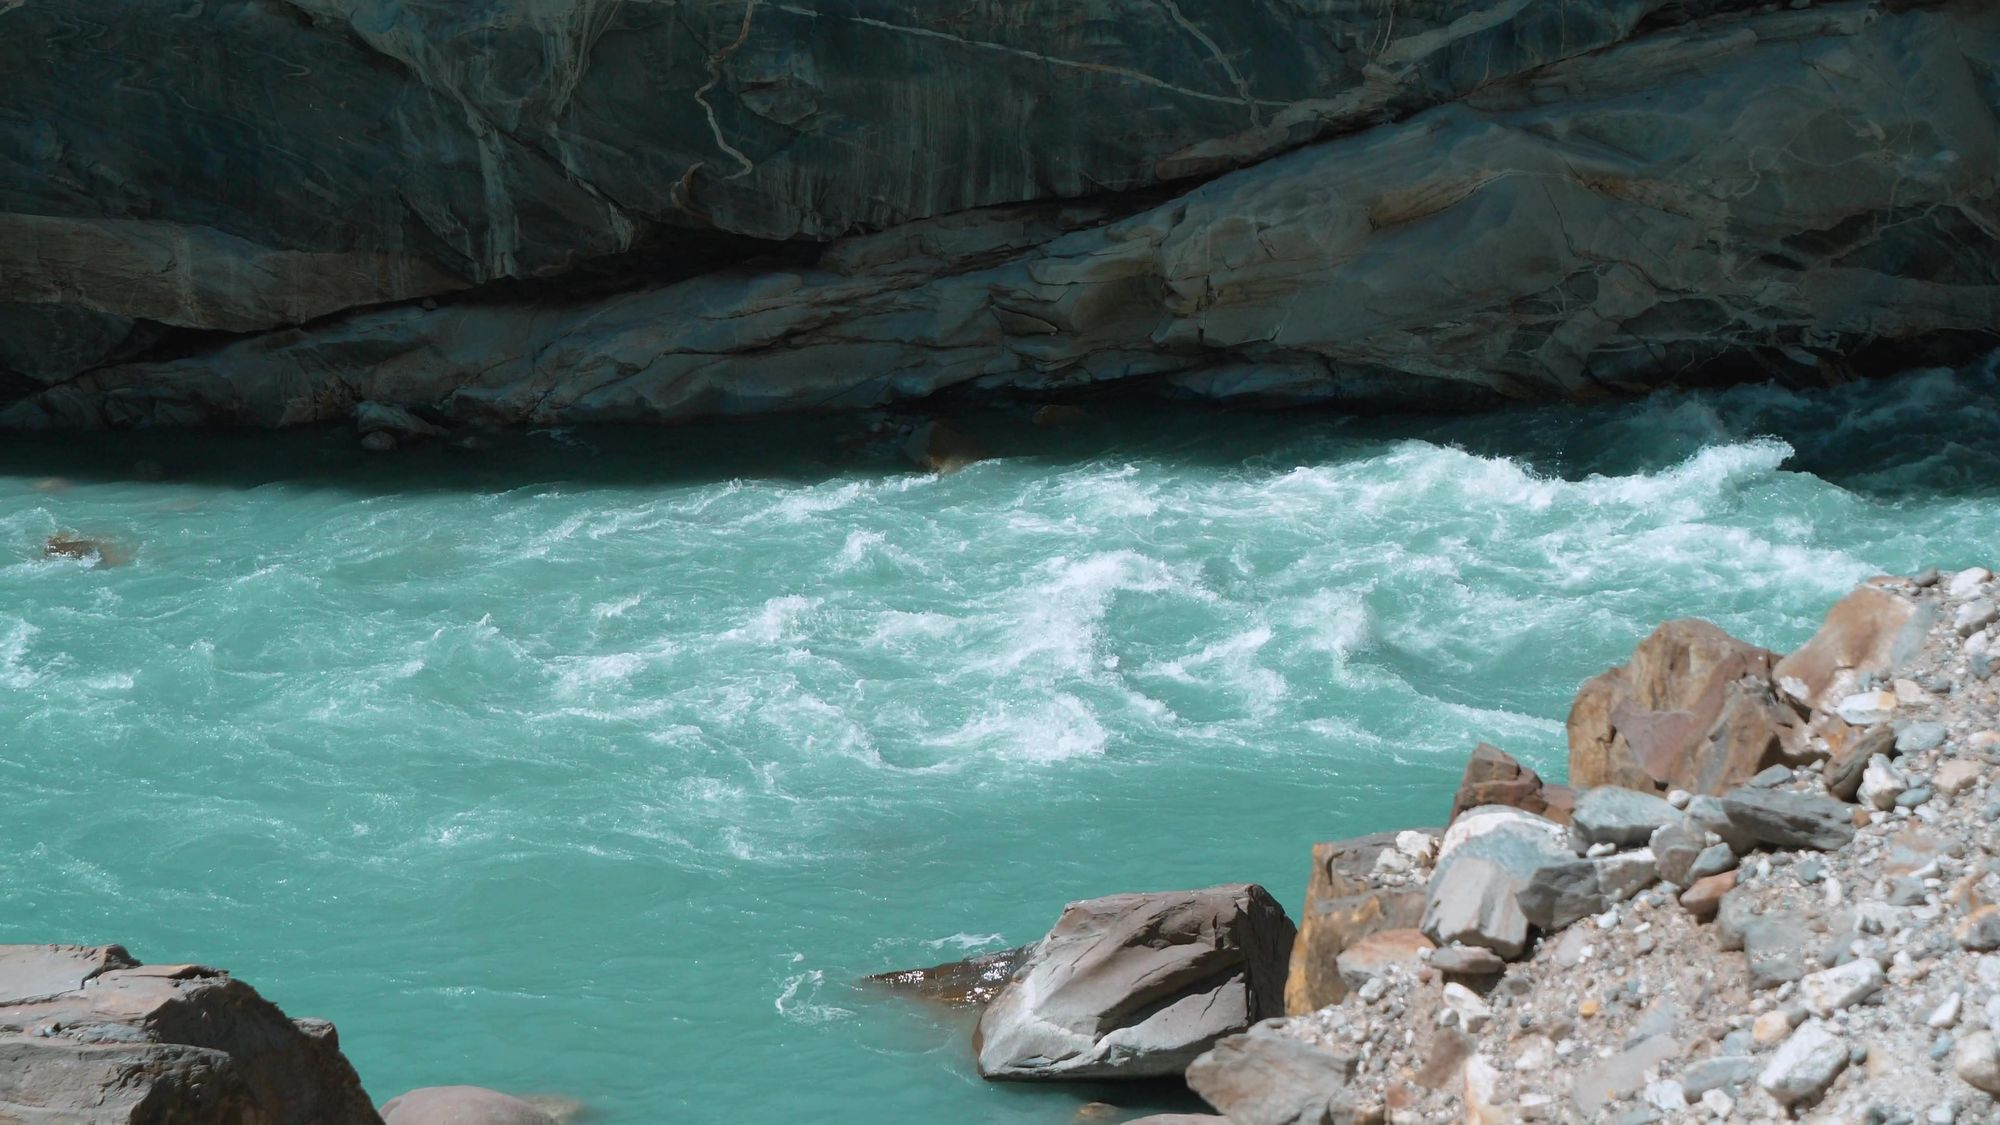 Turquoise water of Spiti River at Khaab Bridge